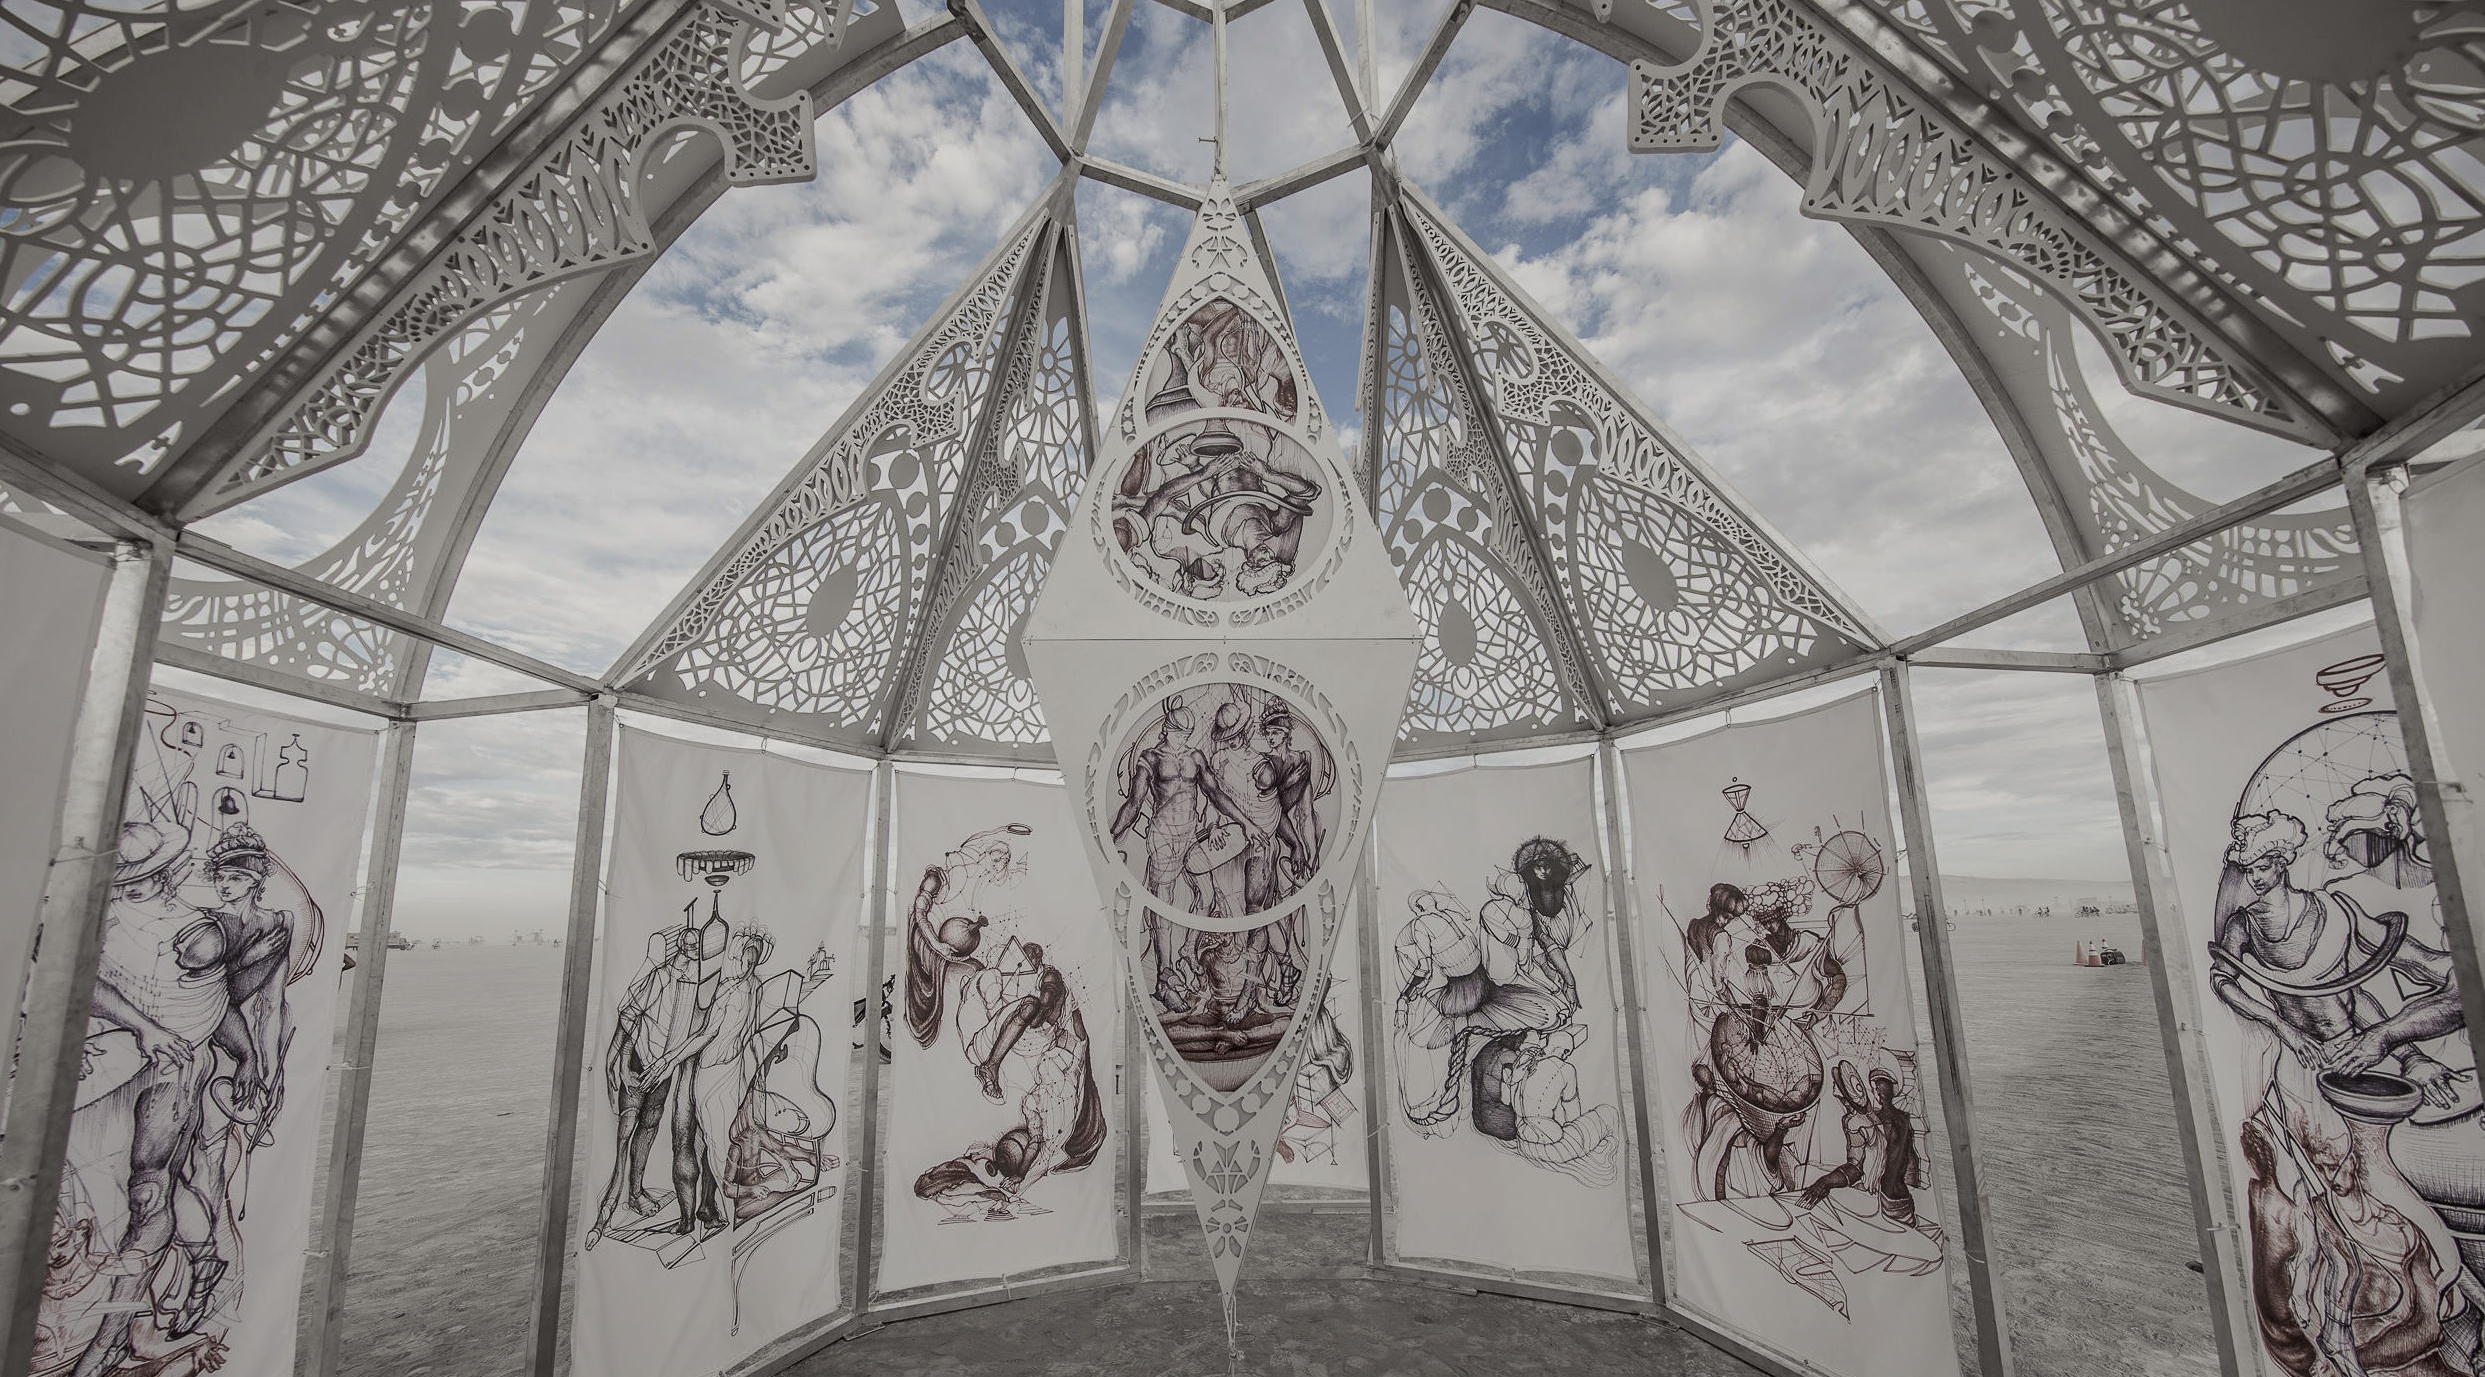 chapel of dancing shadows - an immersive installation